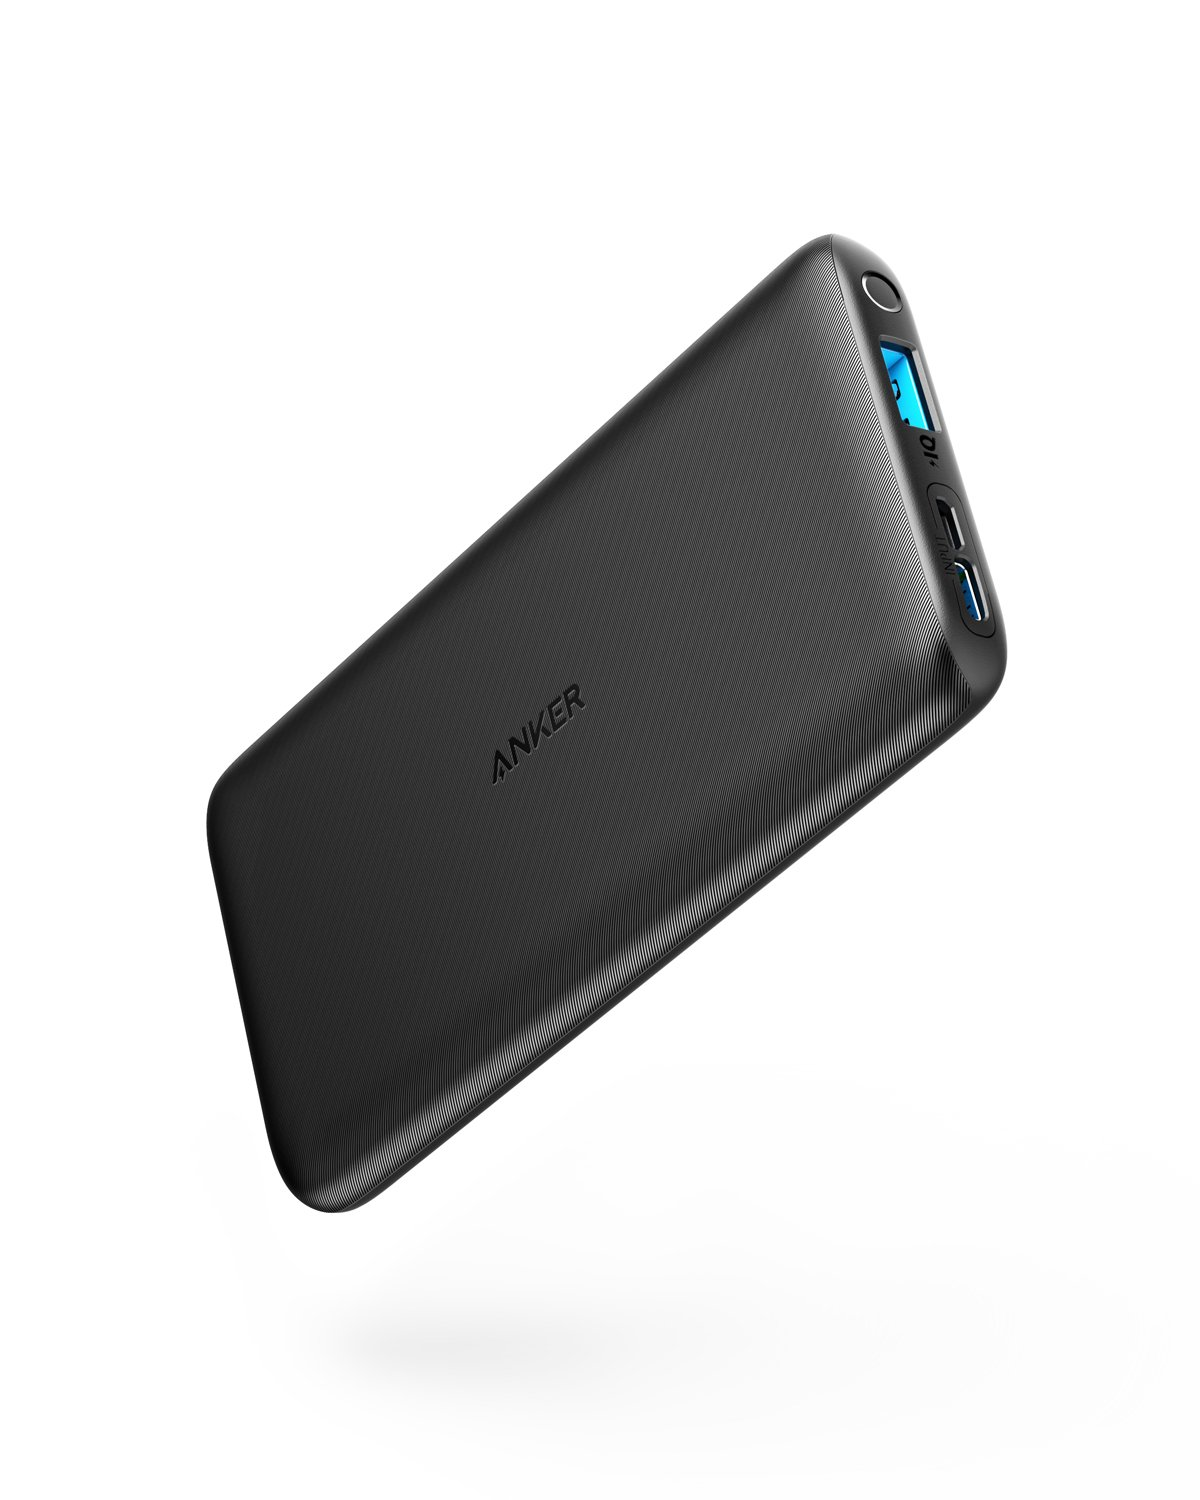 Anker PowerCore Lite 10000mAh, High Capacity Portable Charger, Slim and Light External Battery for iPhone, Samsung Galaxy, and More